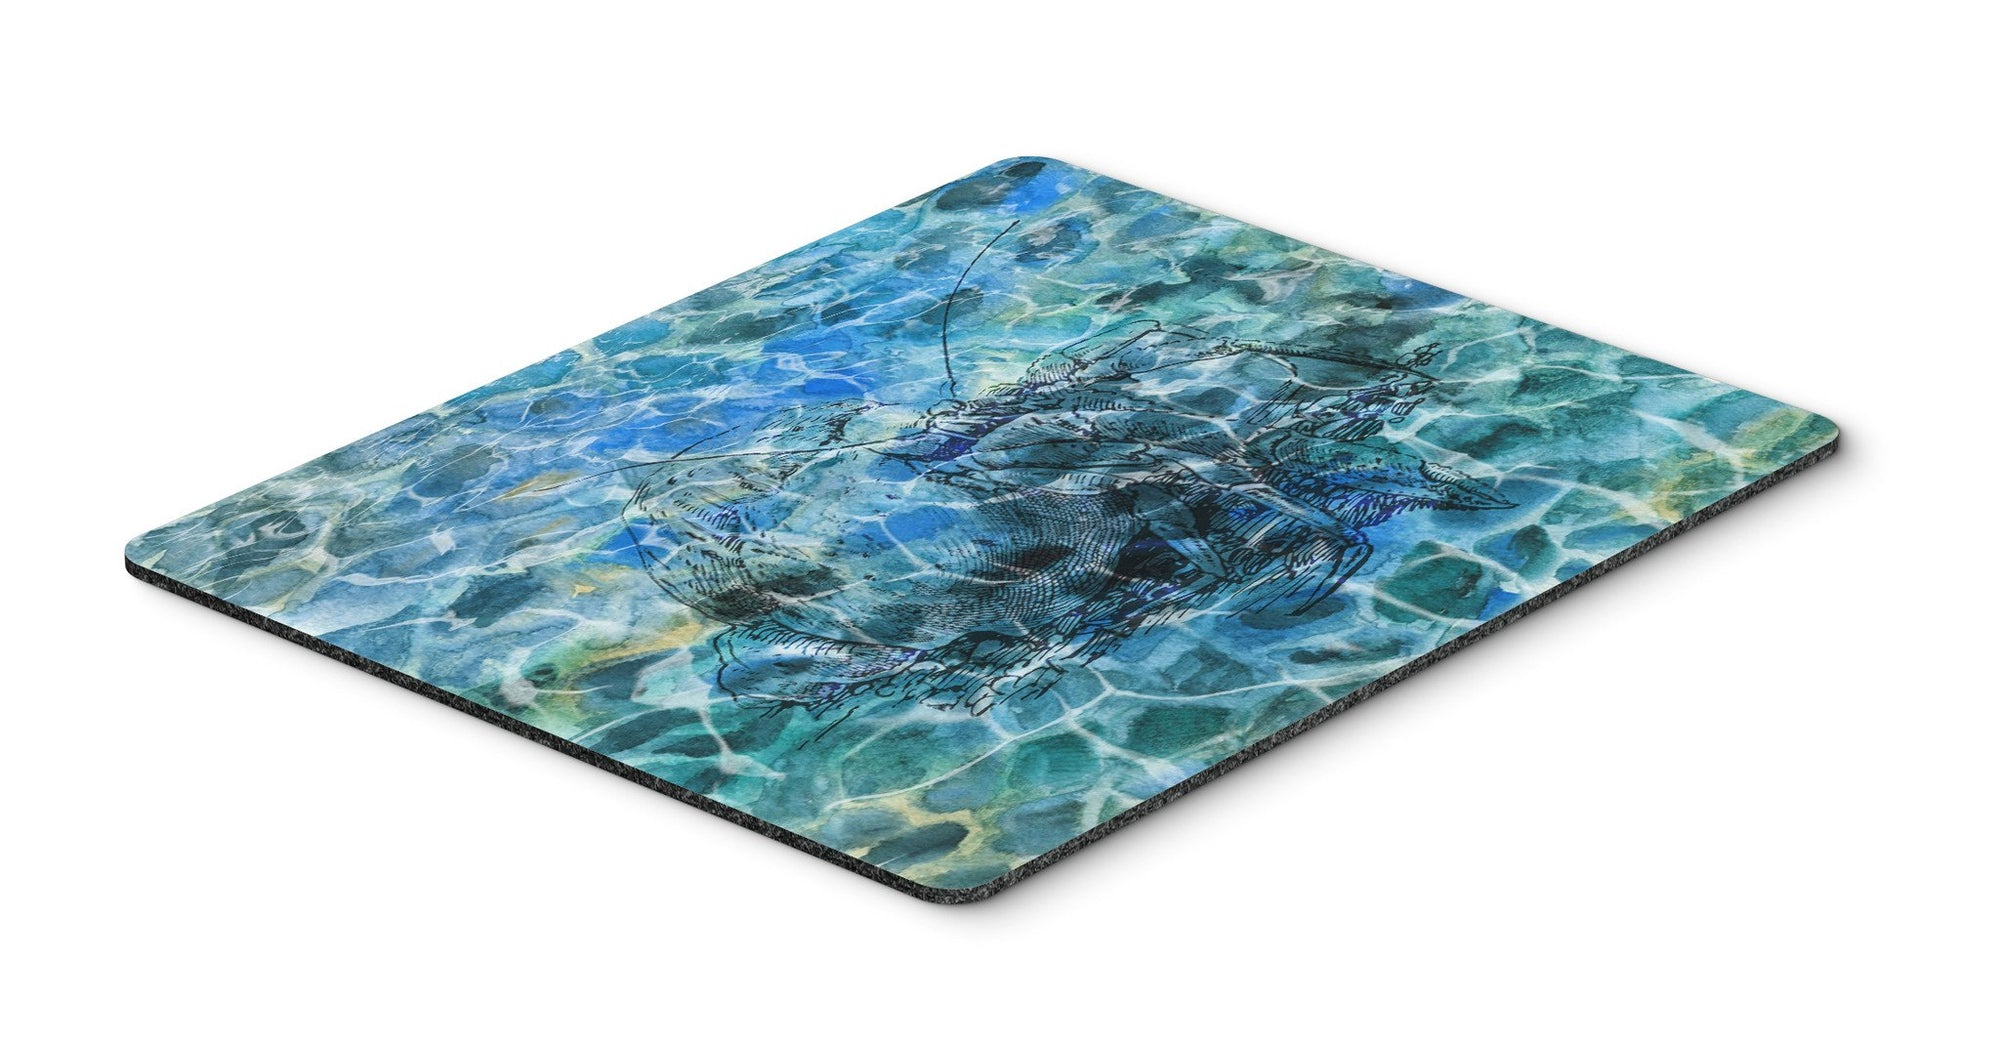 Buy this Hermit Crab Under water Mouse Pad, Hot Pad or Trivet BB5361MP